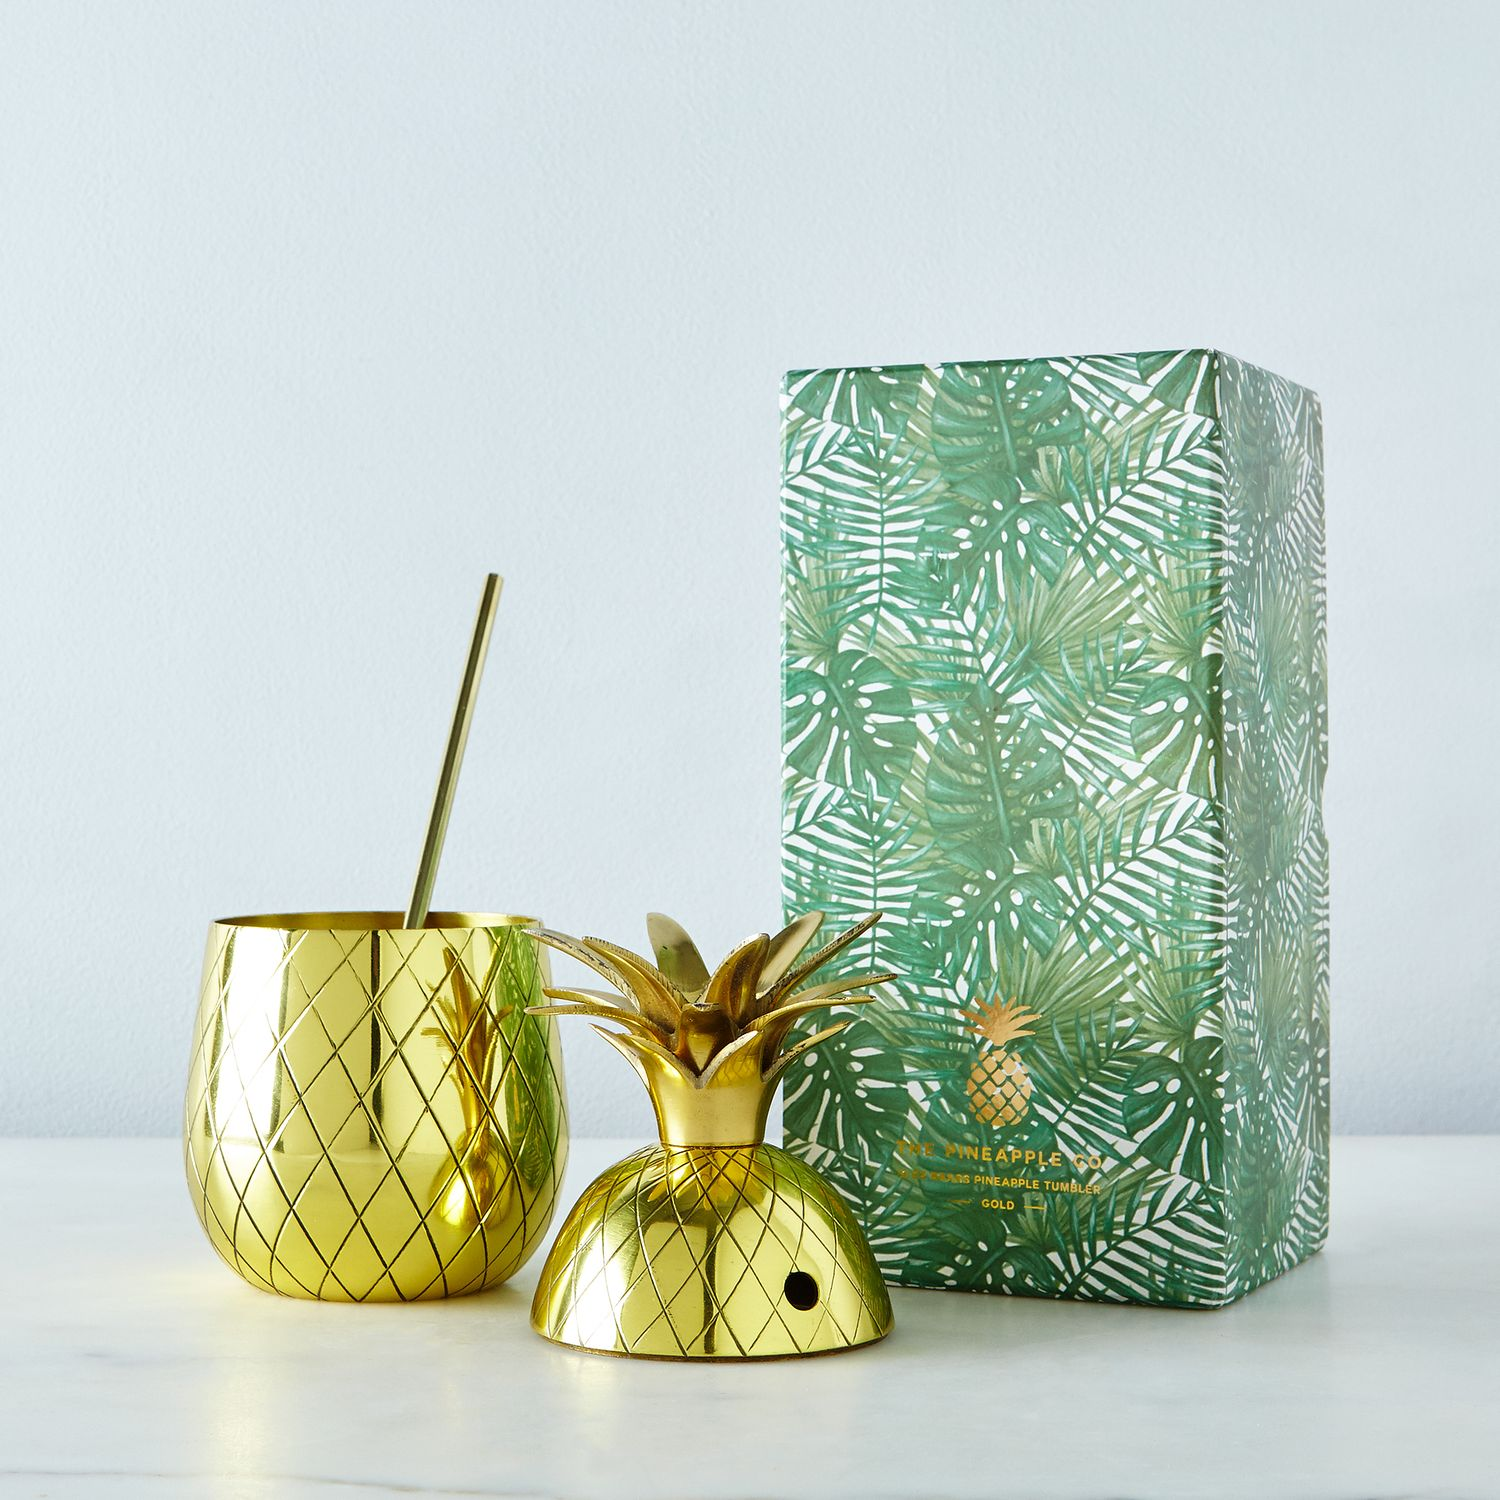 Large Brass Pineapple Tumbler With Straw On Food52